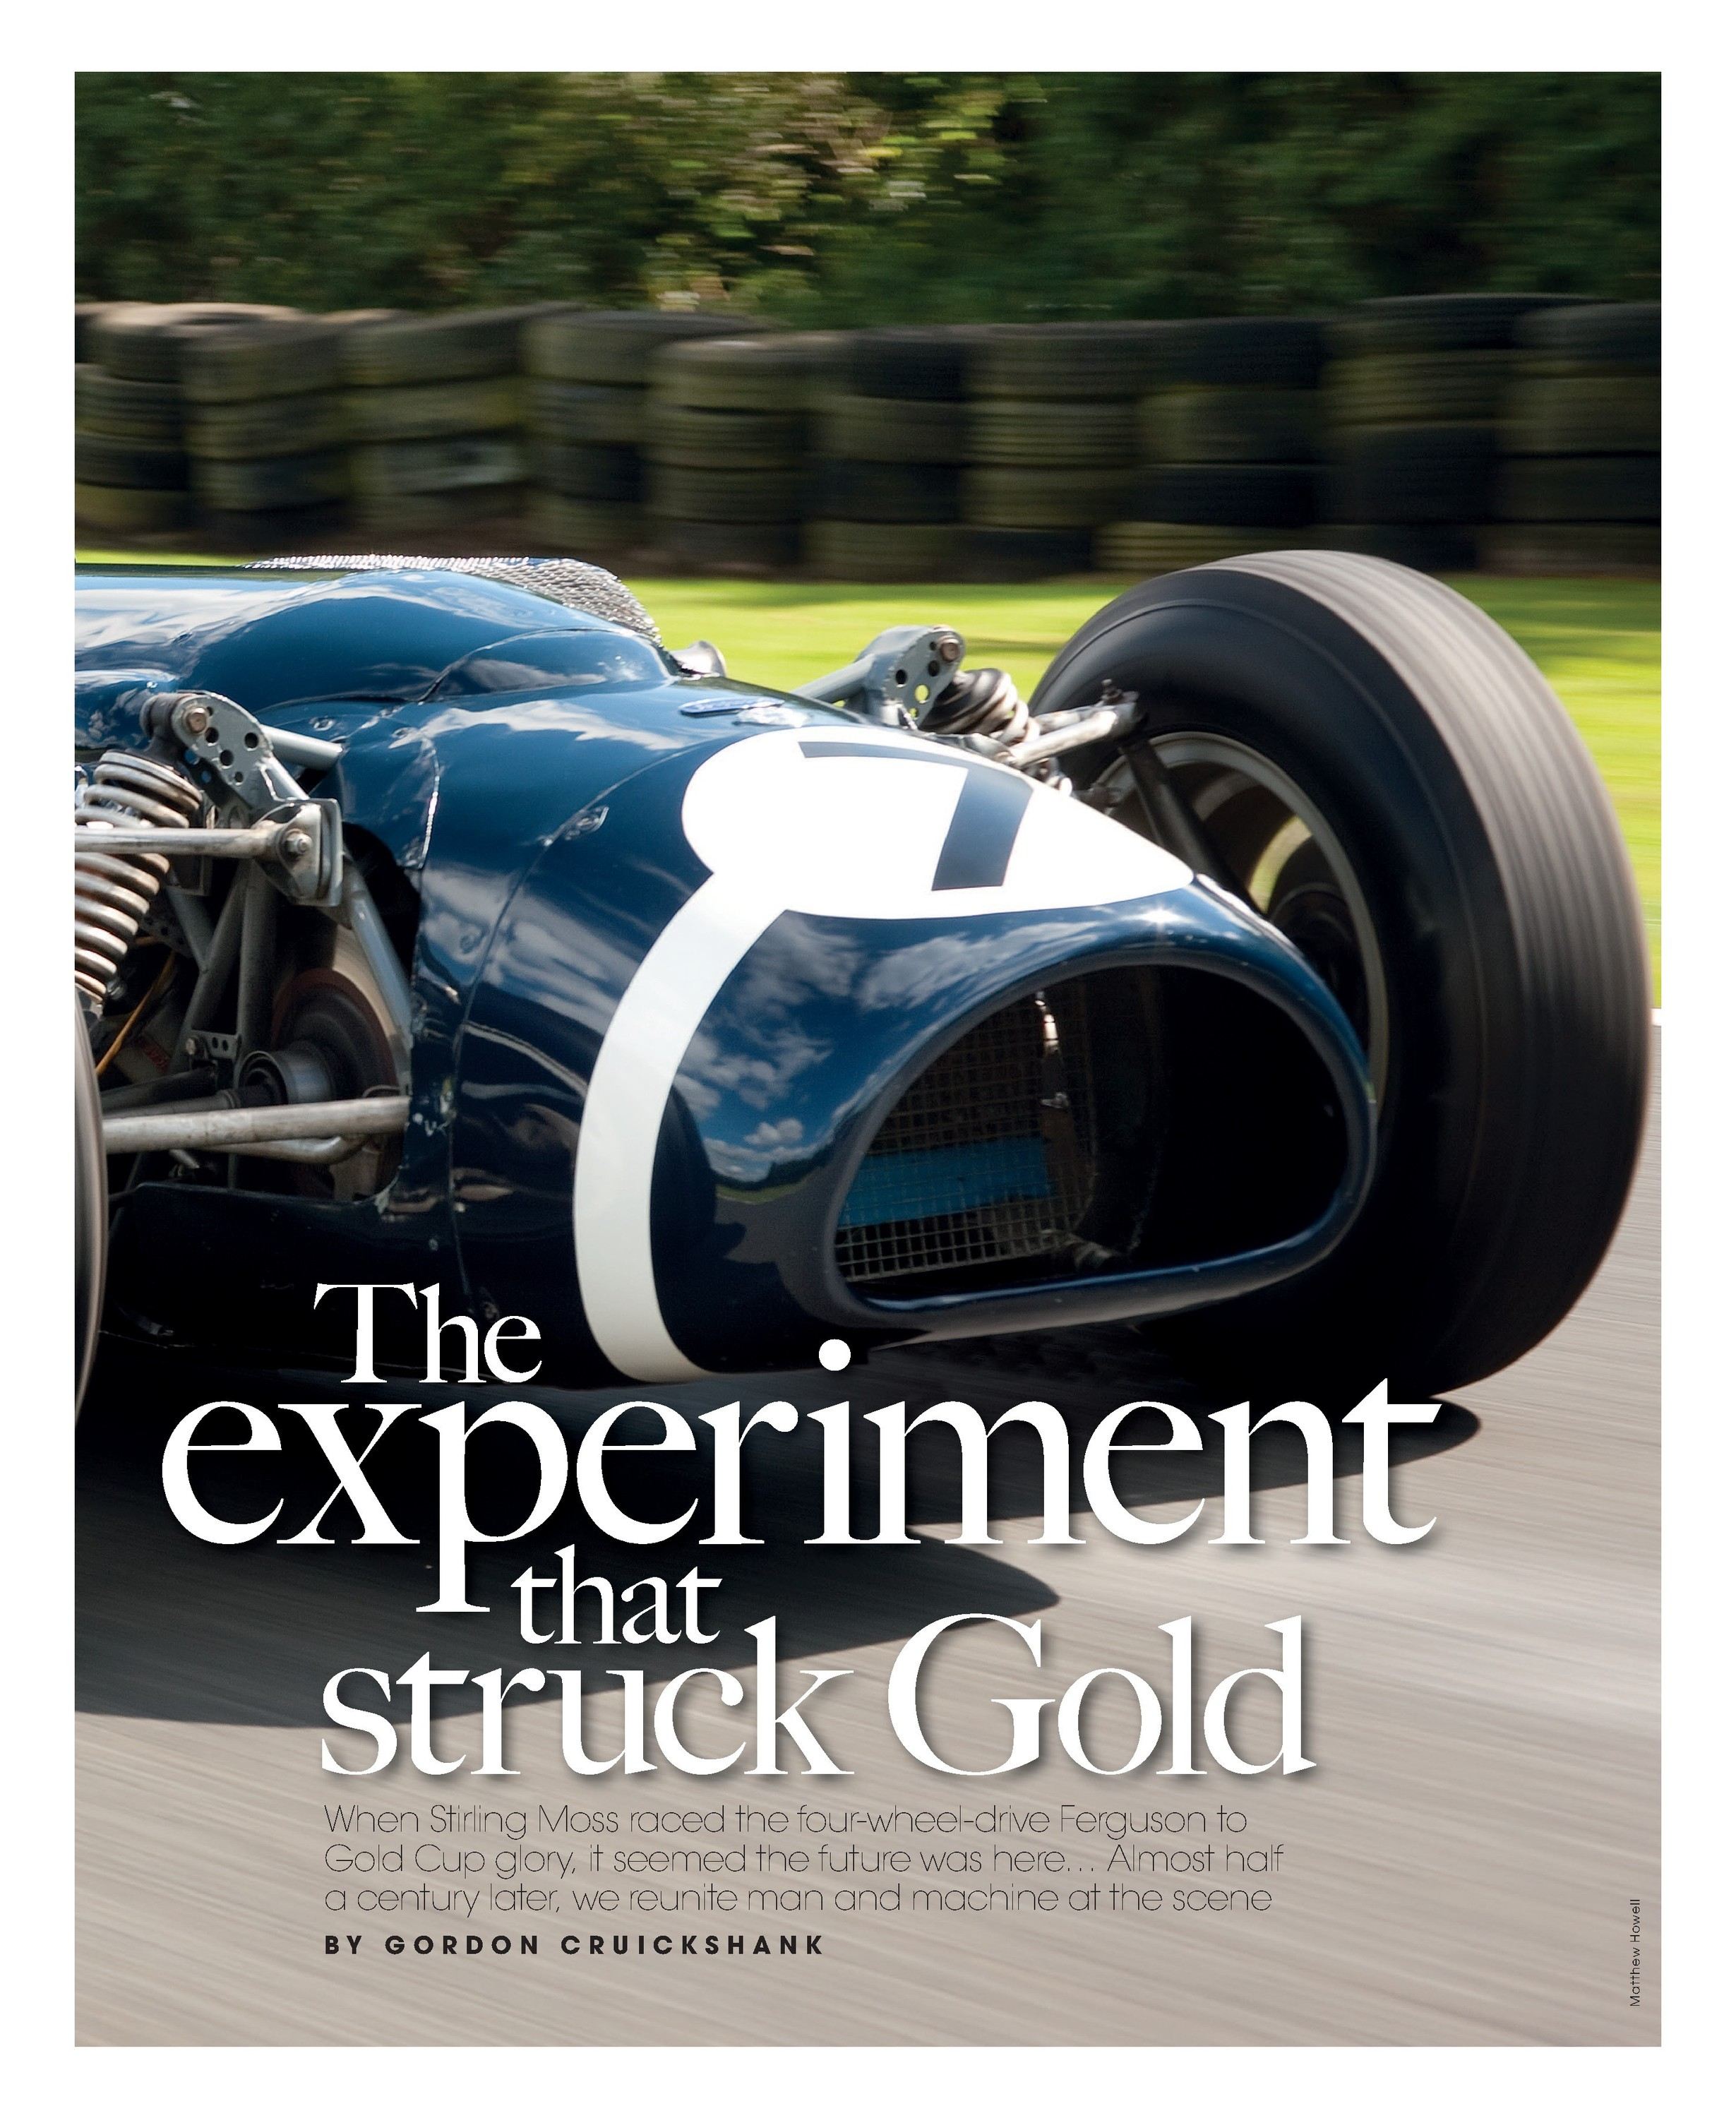 The experiment that struck Gold